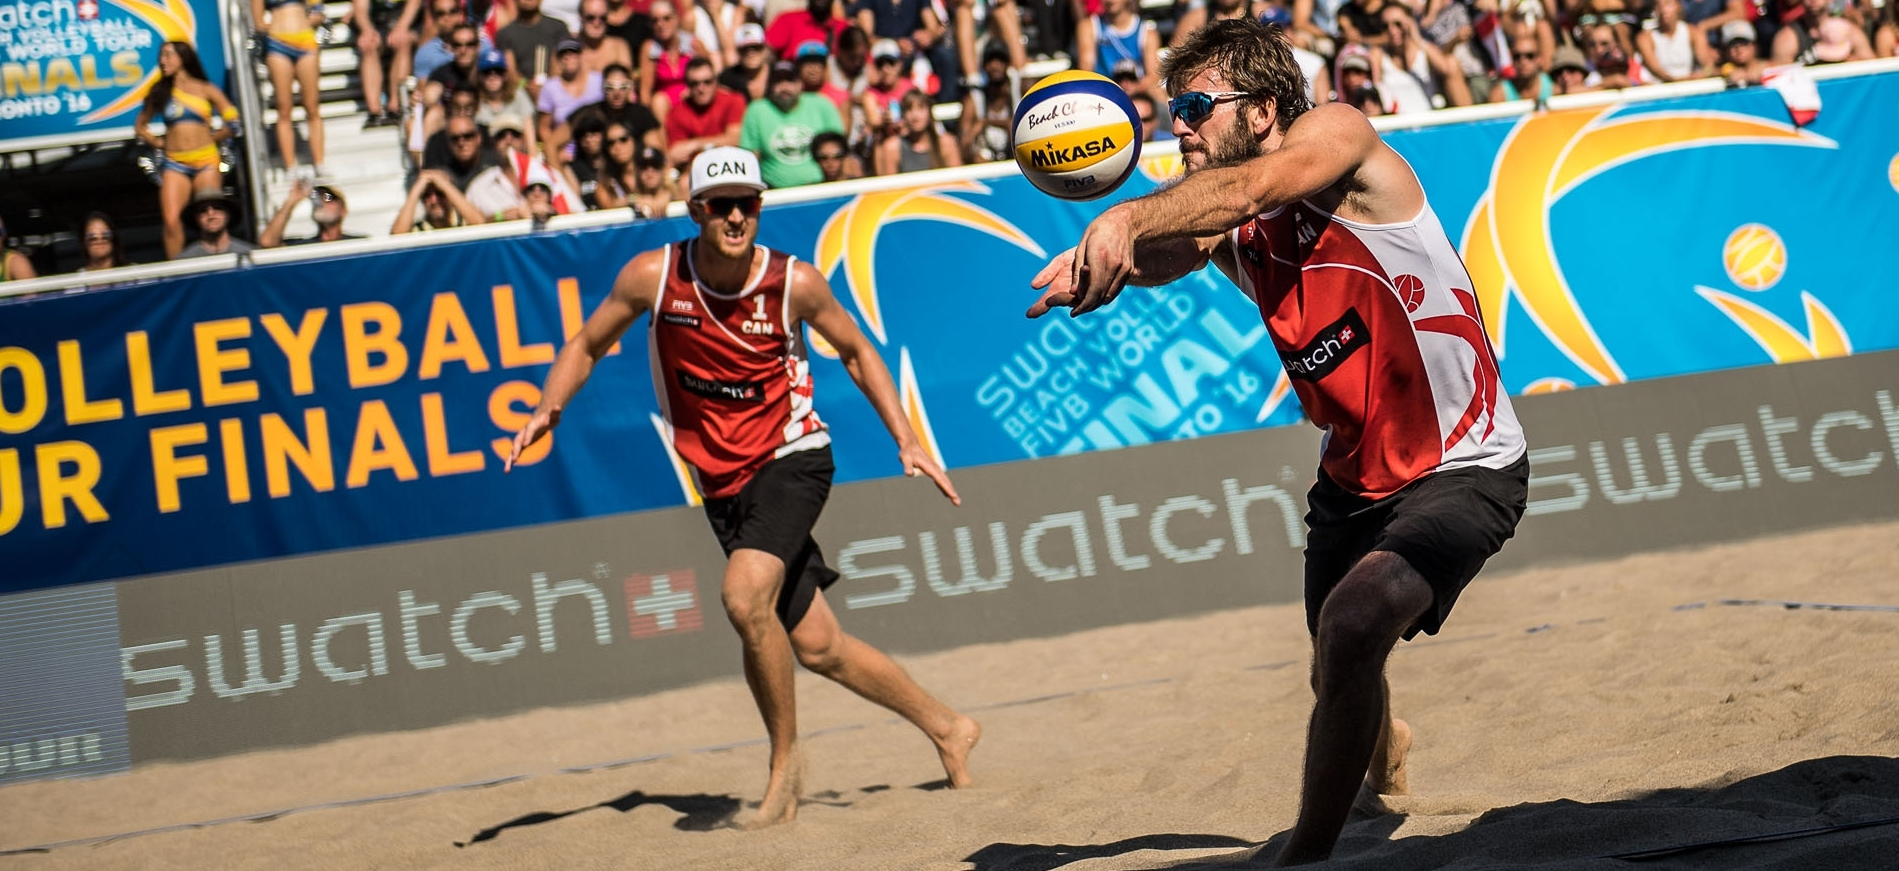 Ben and partner Chaim Schalk in action on home sand at the Toronto Finals last September.